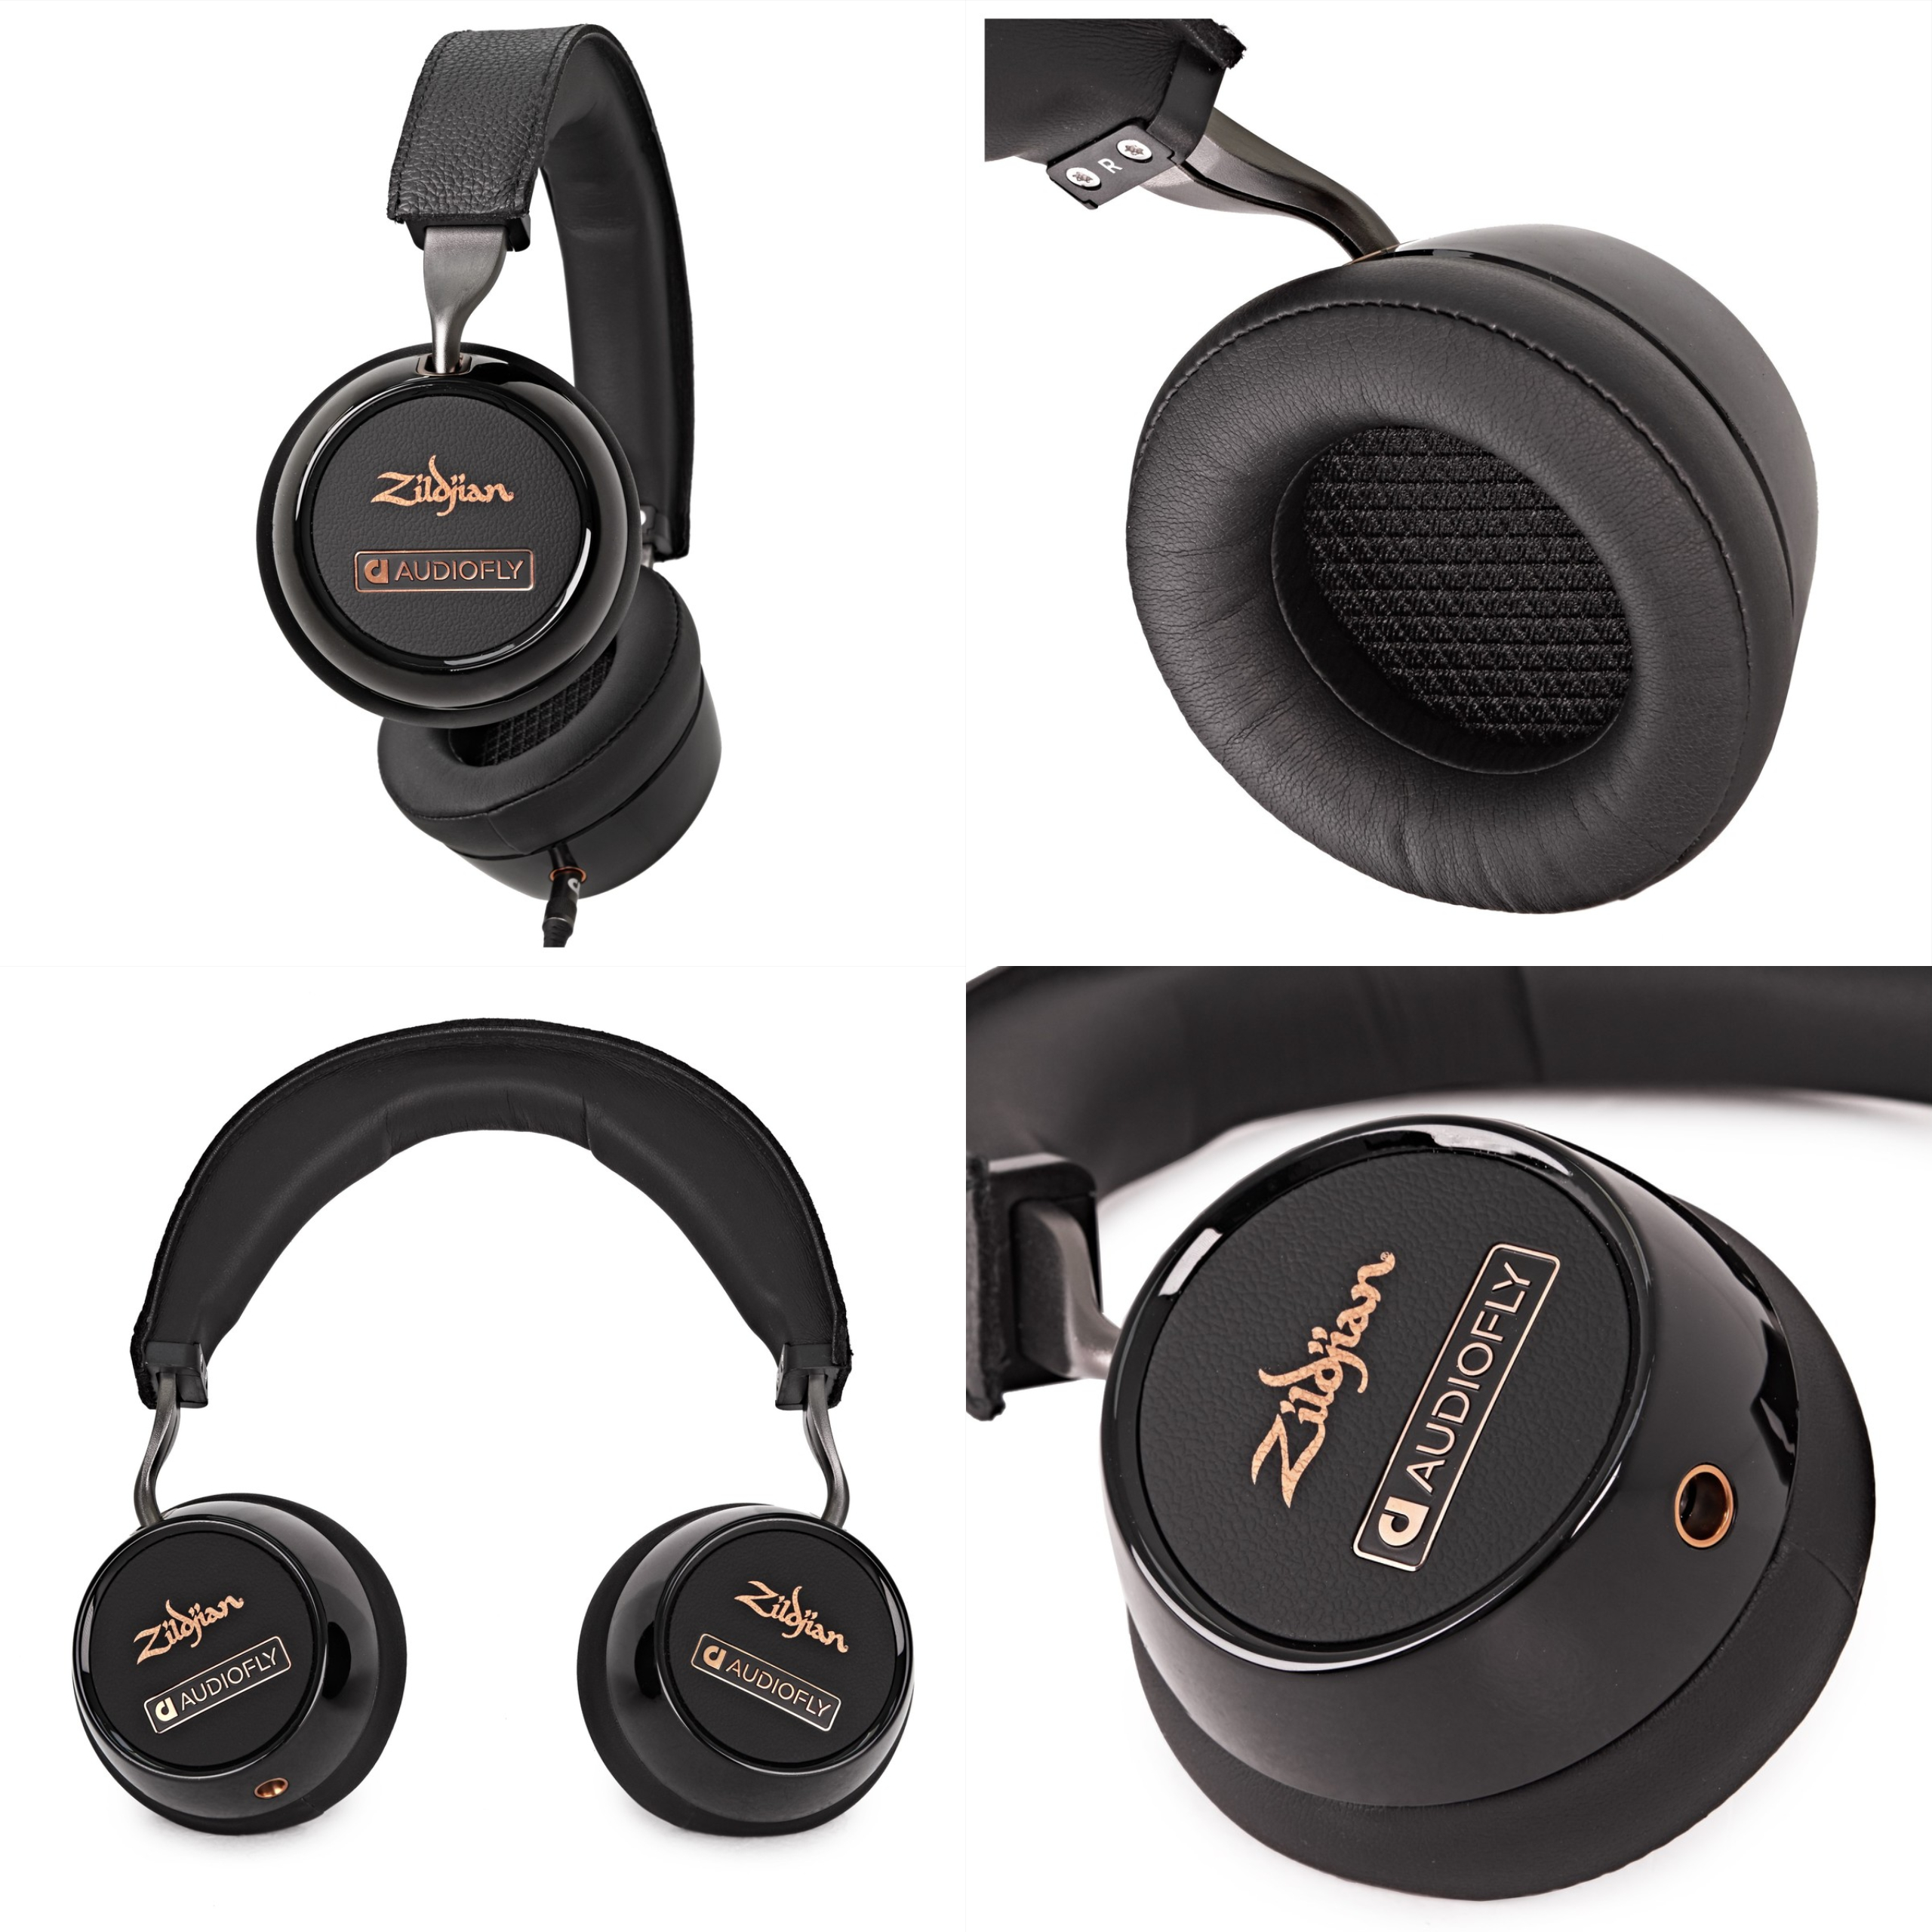 AudioFly Zildjian Headphones